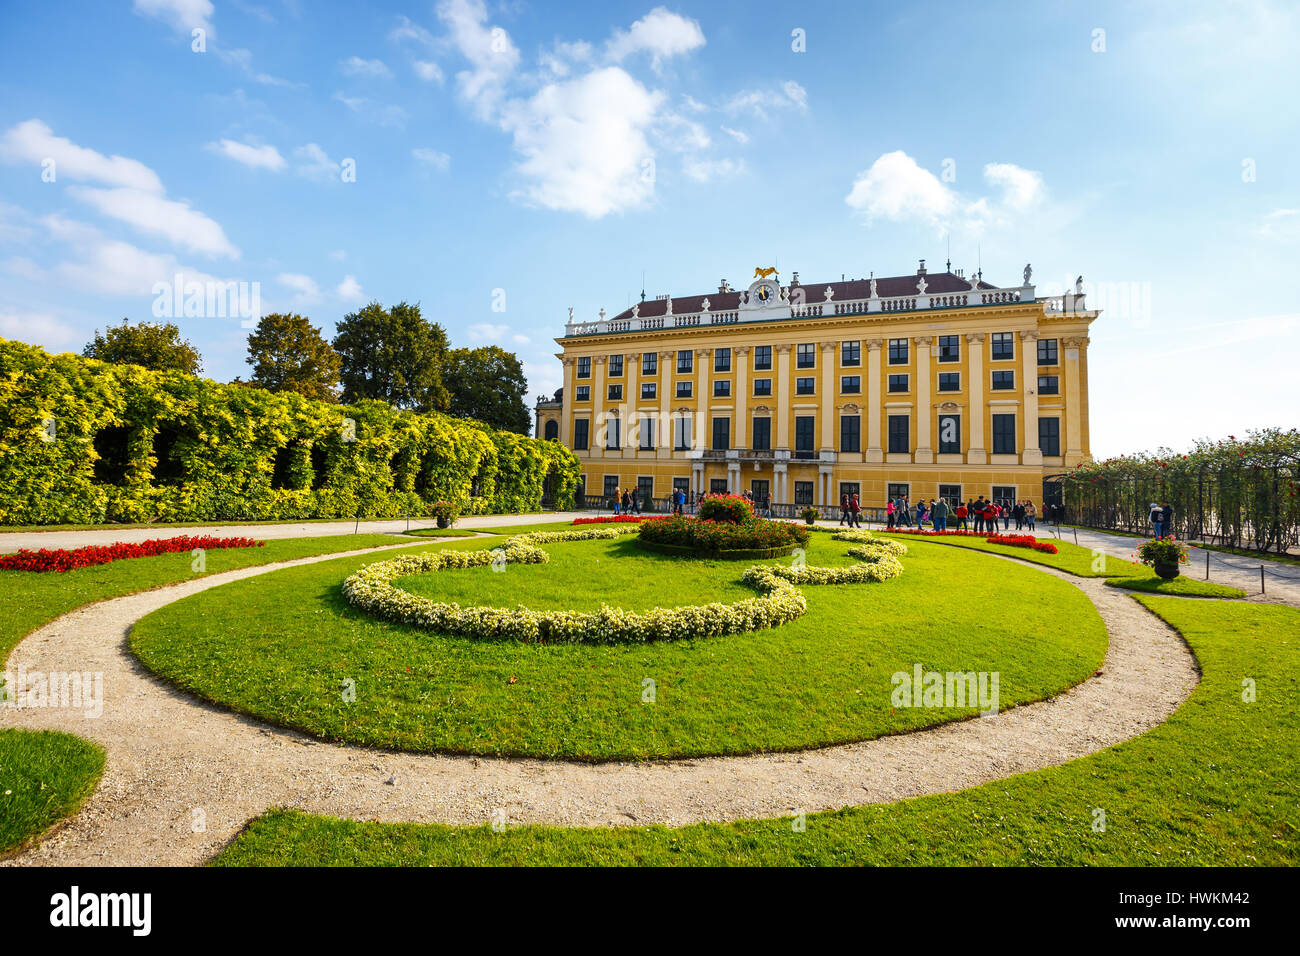 Vienna, Austria, October 14, 2016: Schonbrunn Palace in Vienna. Baroque palace is former imperial summer residence - Stock Image